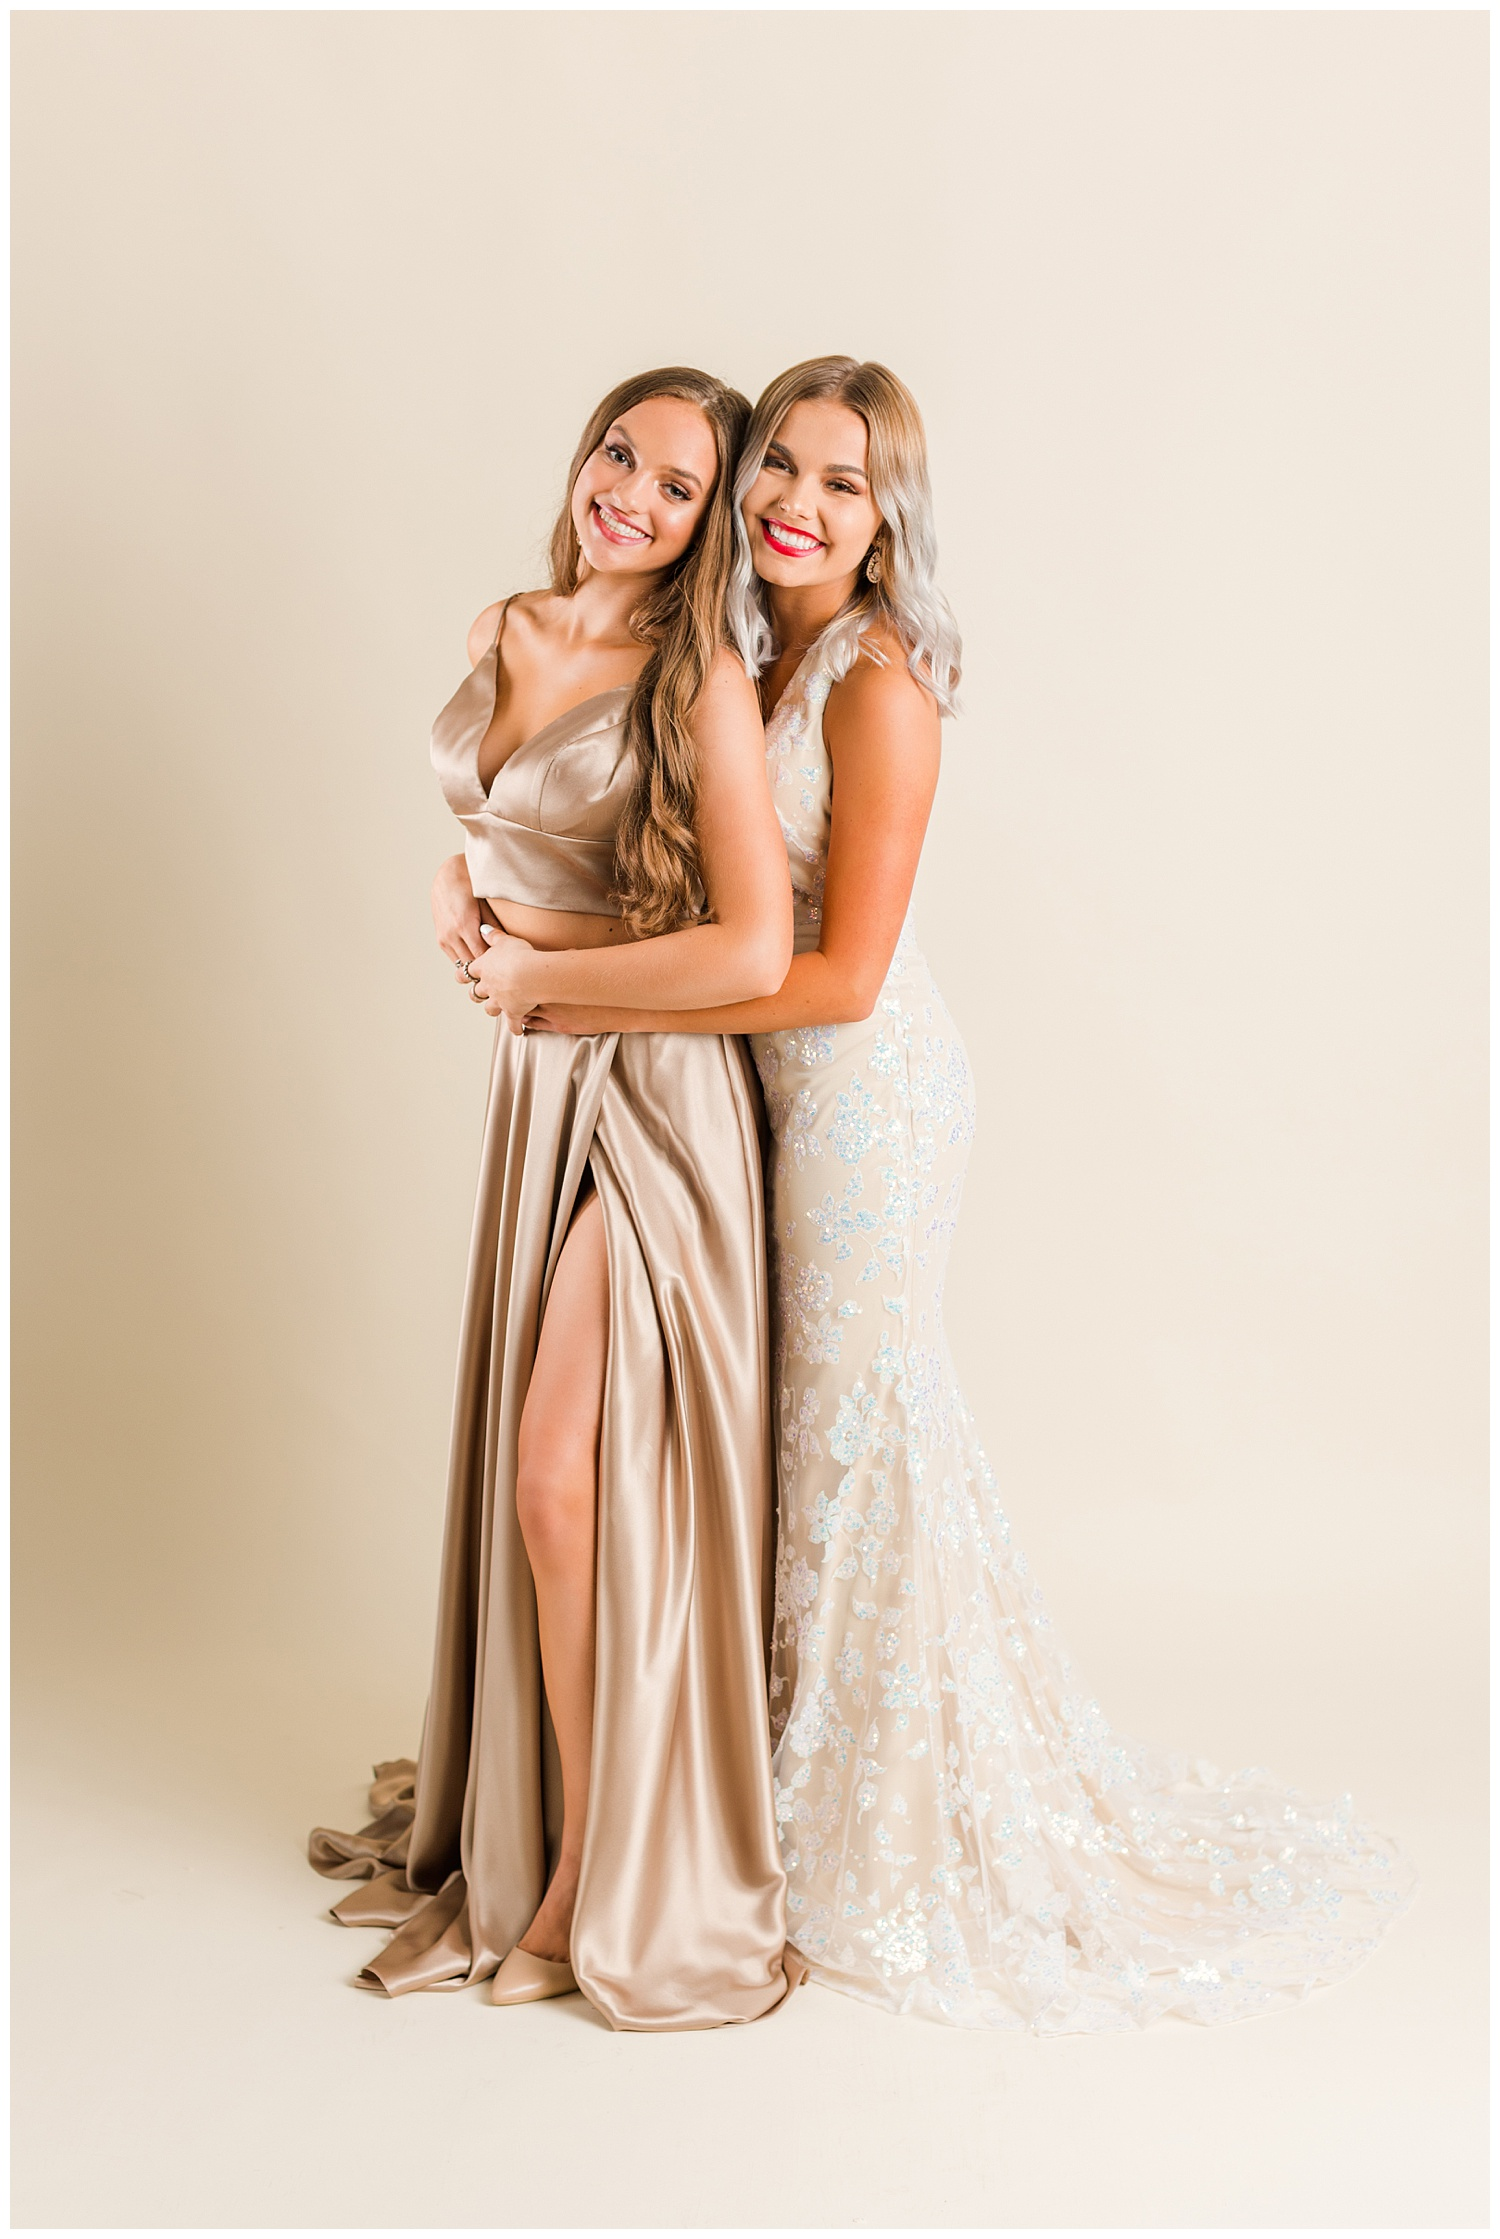 Addison poses in a Colette prom dress and Kennedy in a Sherri Hill prom dress for a magazine cover | CB Studio